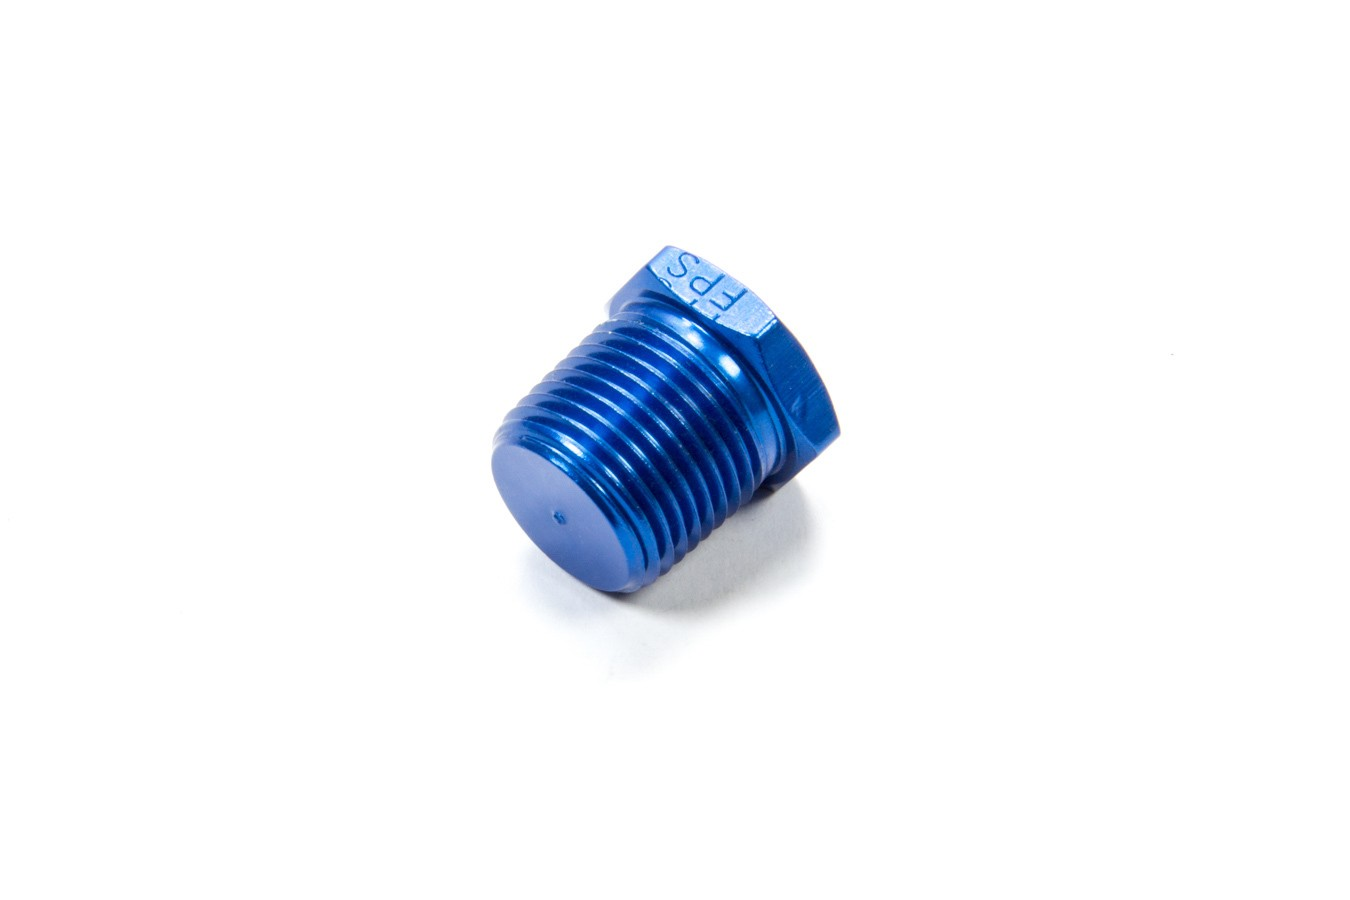 Fragola 493303 Fitting, Plug, 3/8 in NPT, Hex Head, Aluminum, Blue Anodize, Each